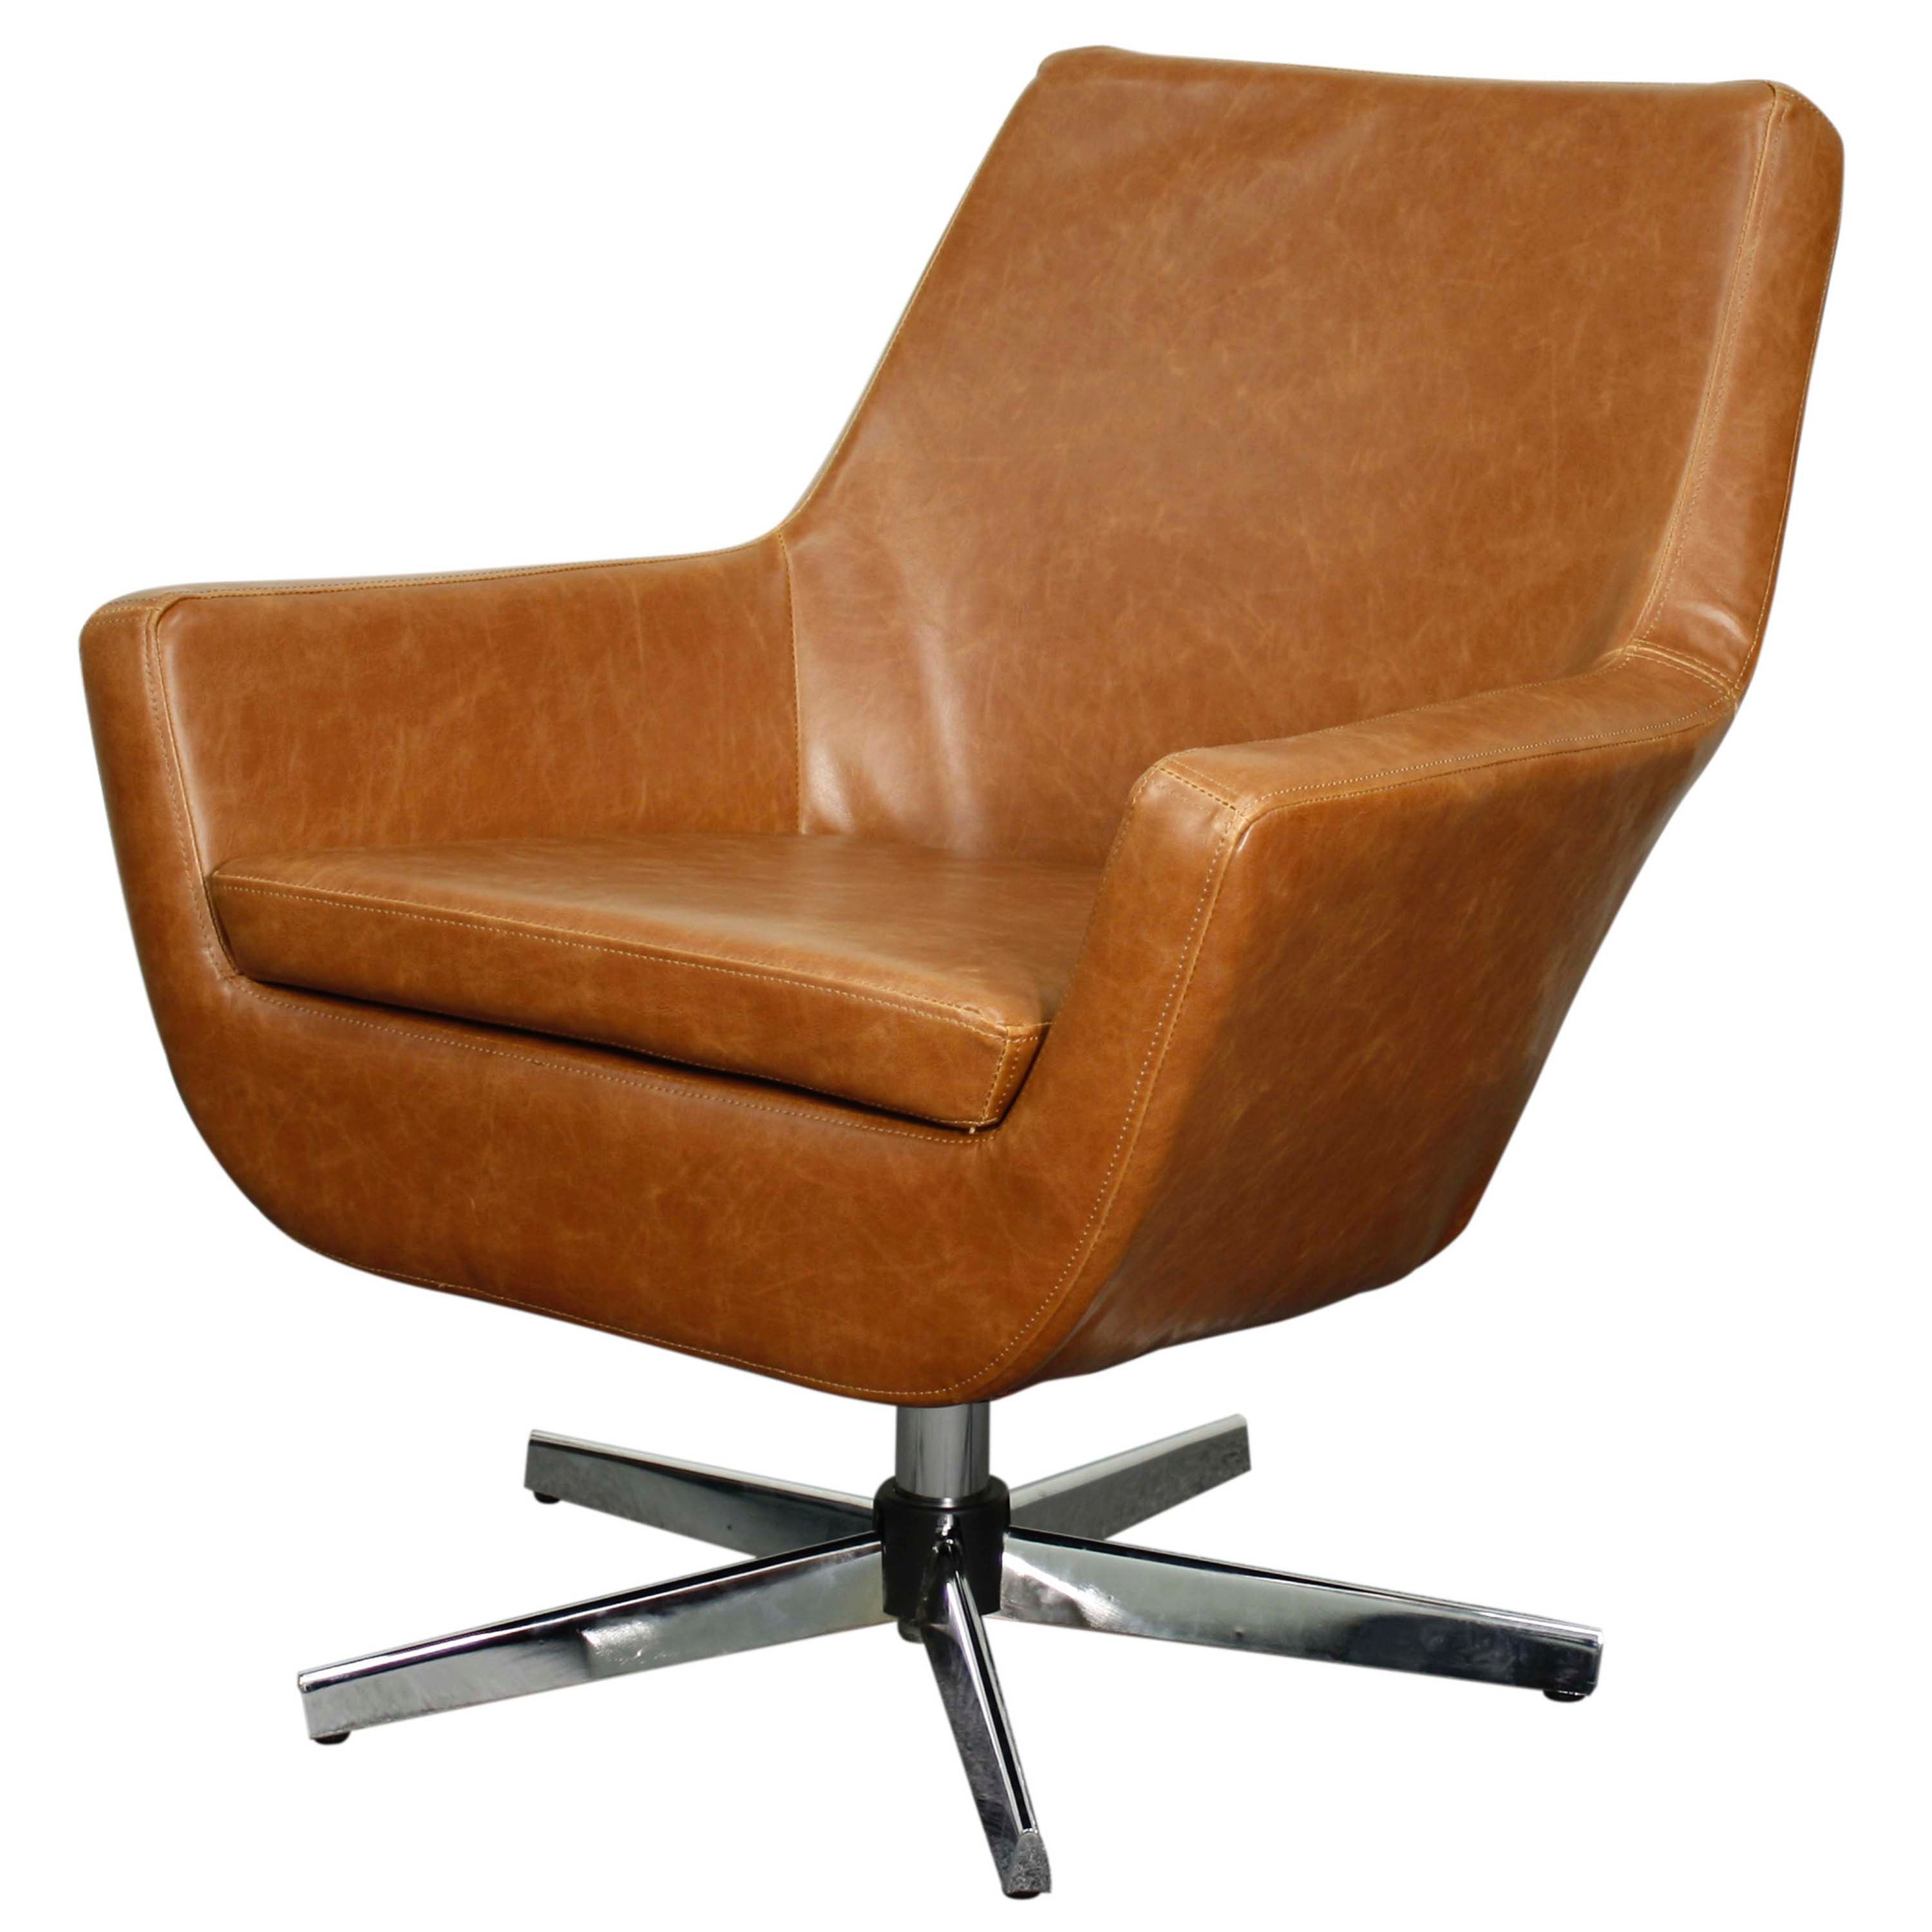 VC NPD New Pacific Direct Furniture